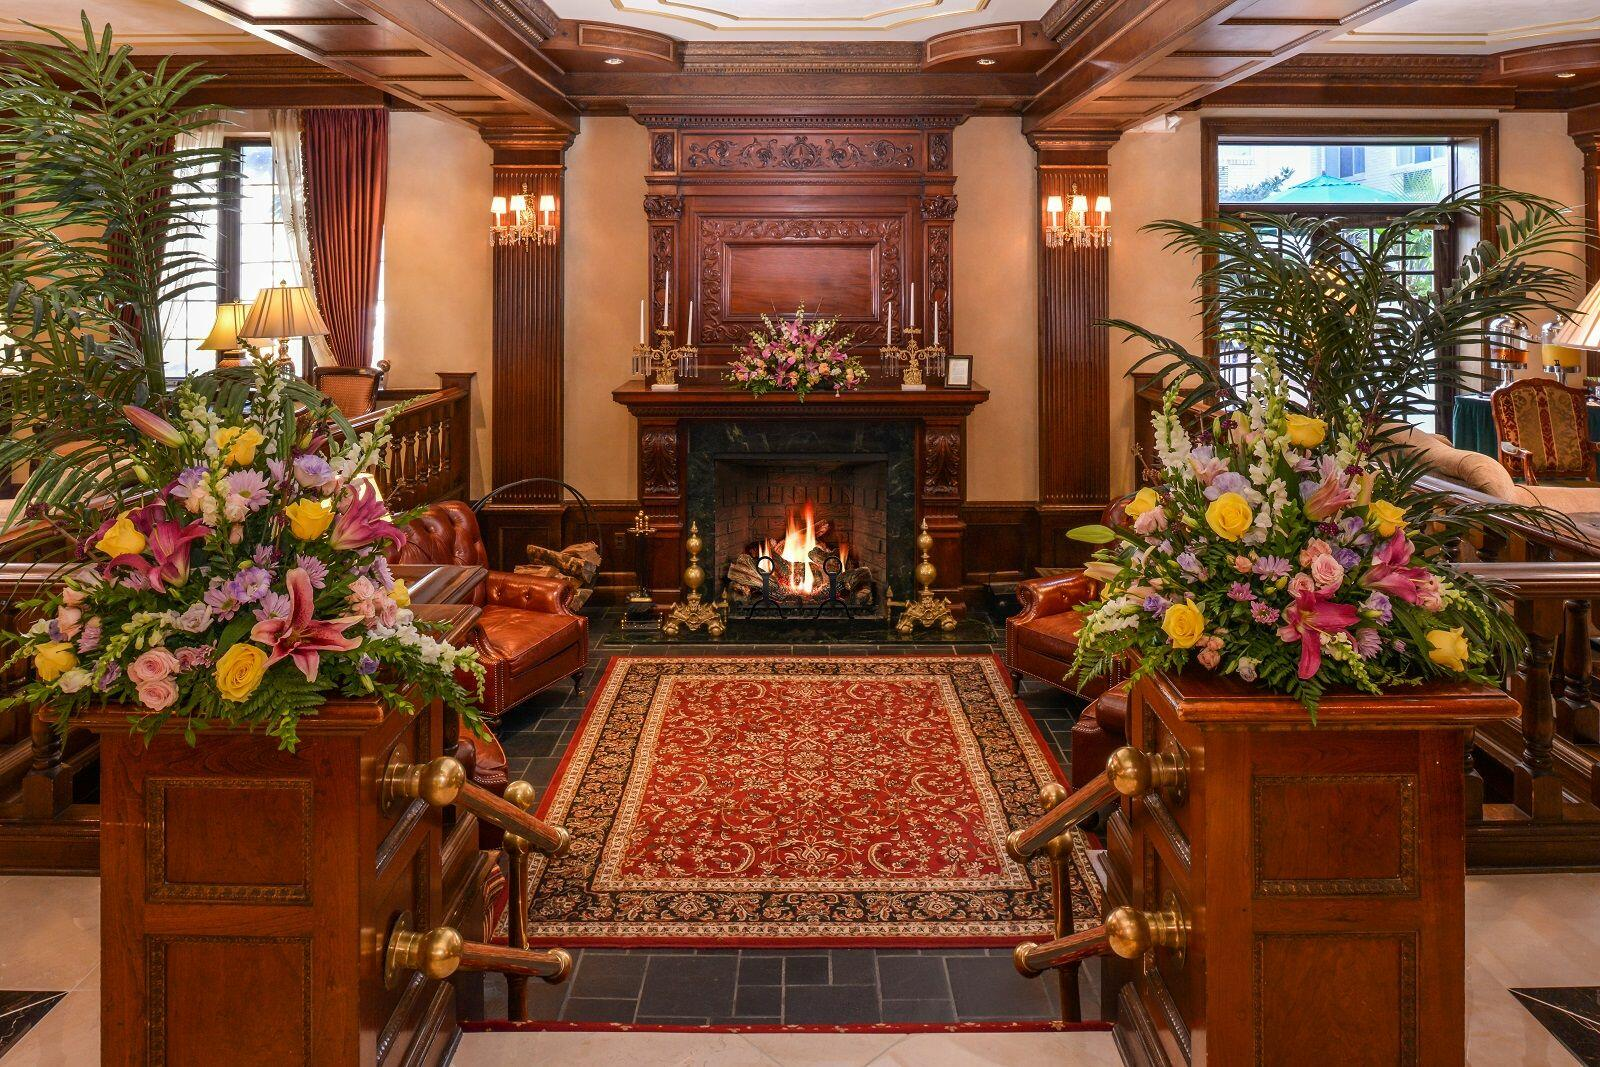 Decadent Victorian lobby with fireplace